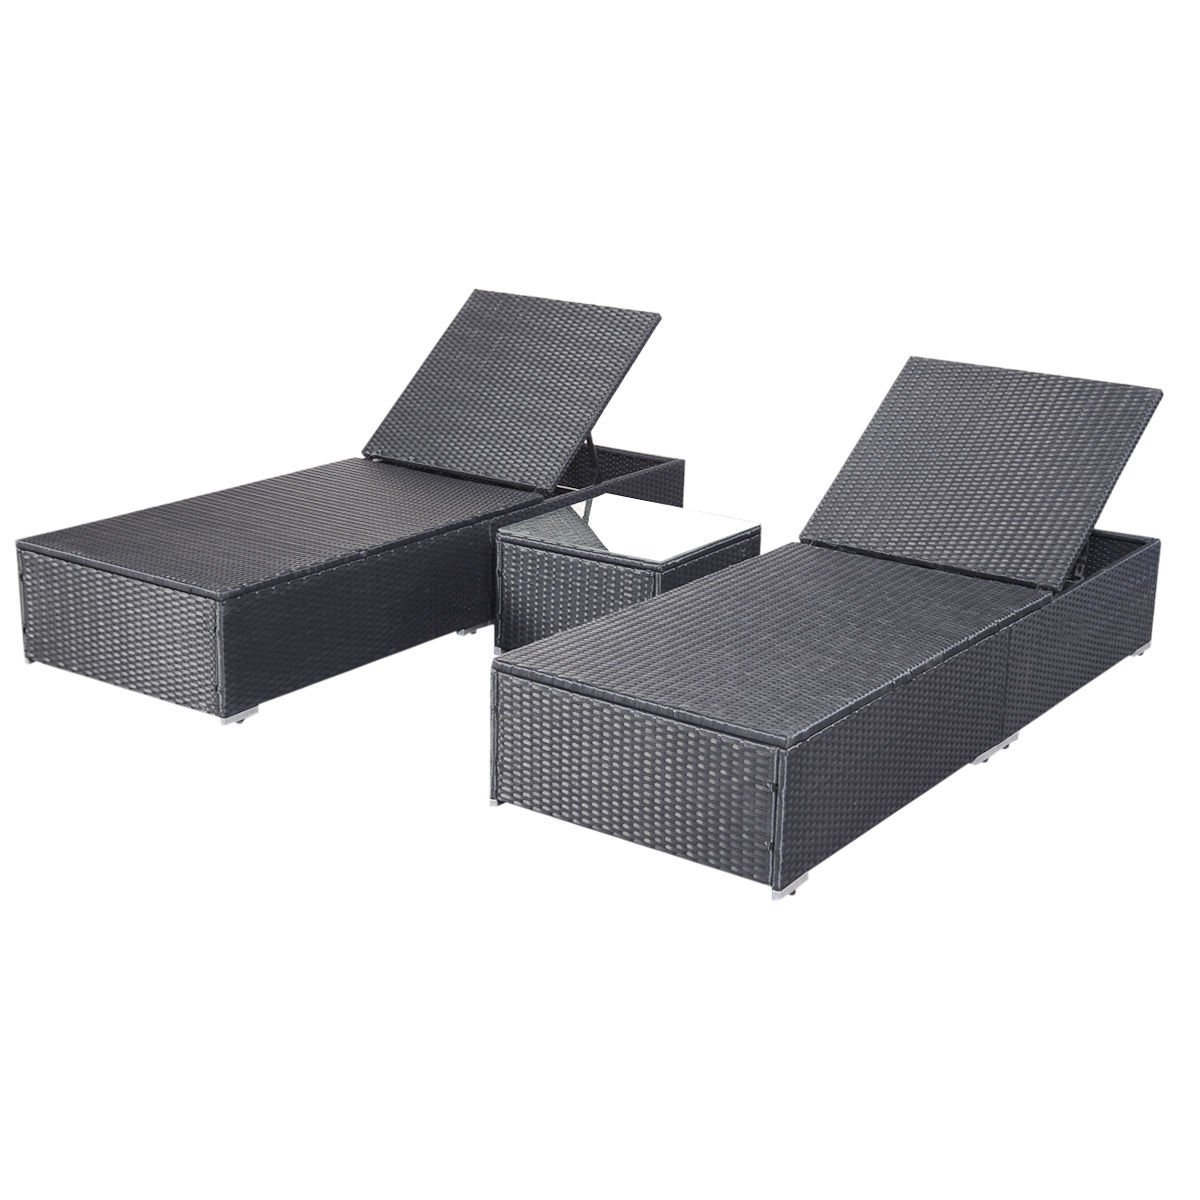 Fashionable Black Chaise Lounge Outdoor Chairs With Regard To Amazon : Tangkula 3 Pcs Wicker Outdoor Furniture Pool Chaise (View 12 of 15)